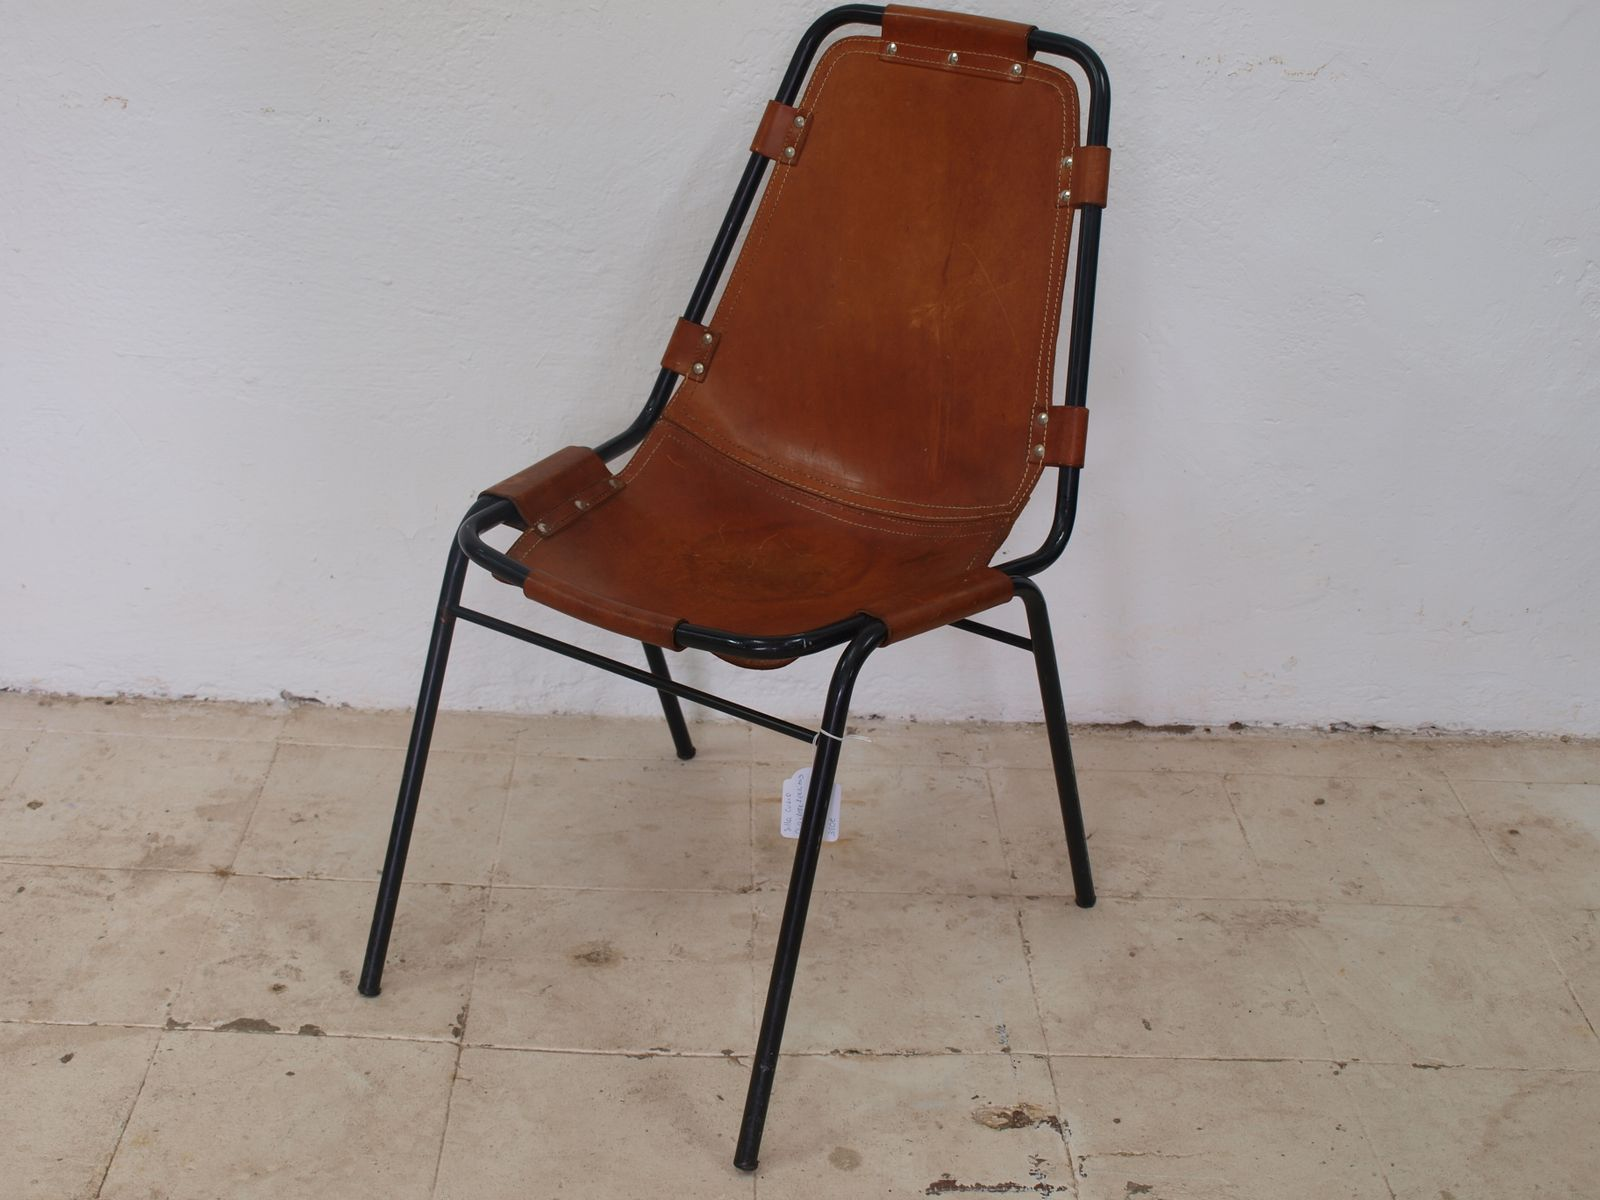 Les Arcs Chair By Charlotte Perriand 1960s For Sale At Pamono